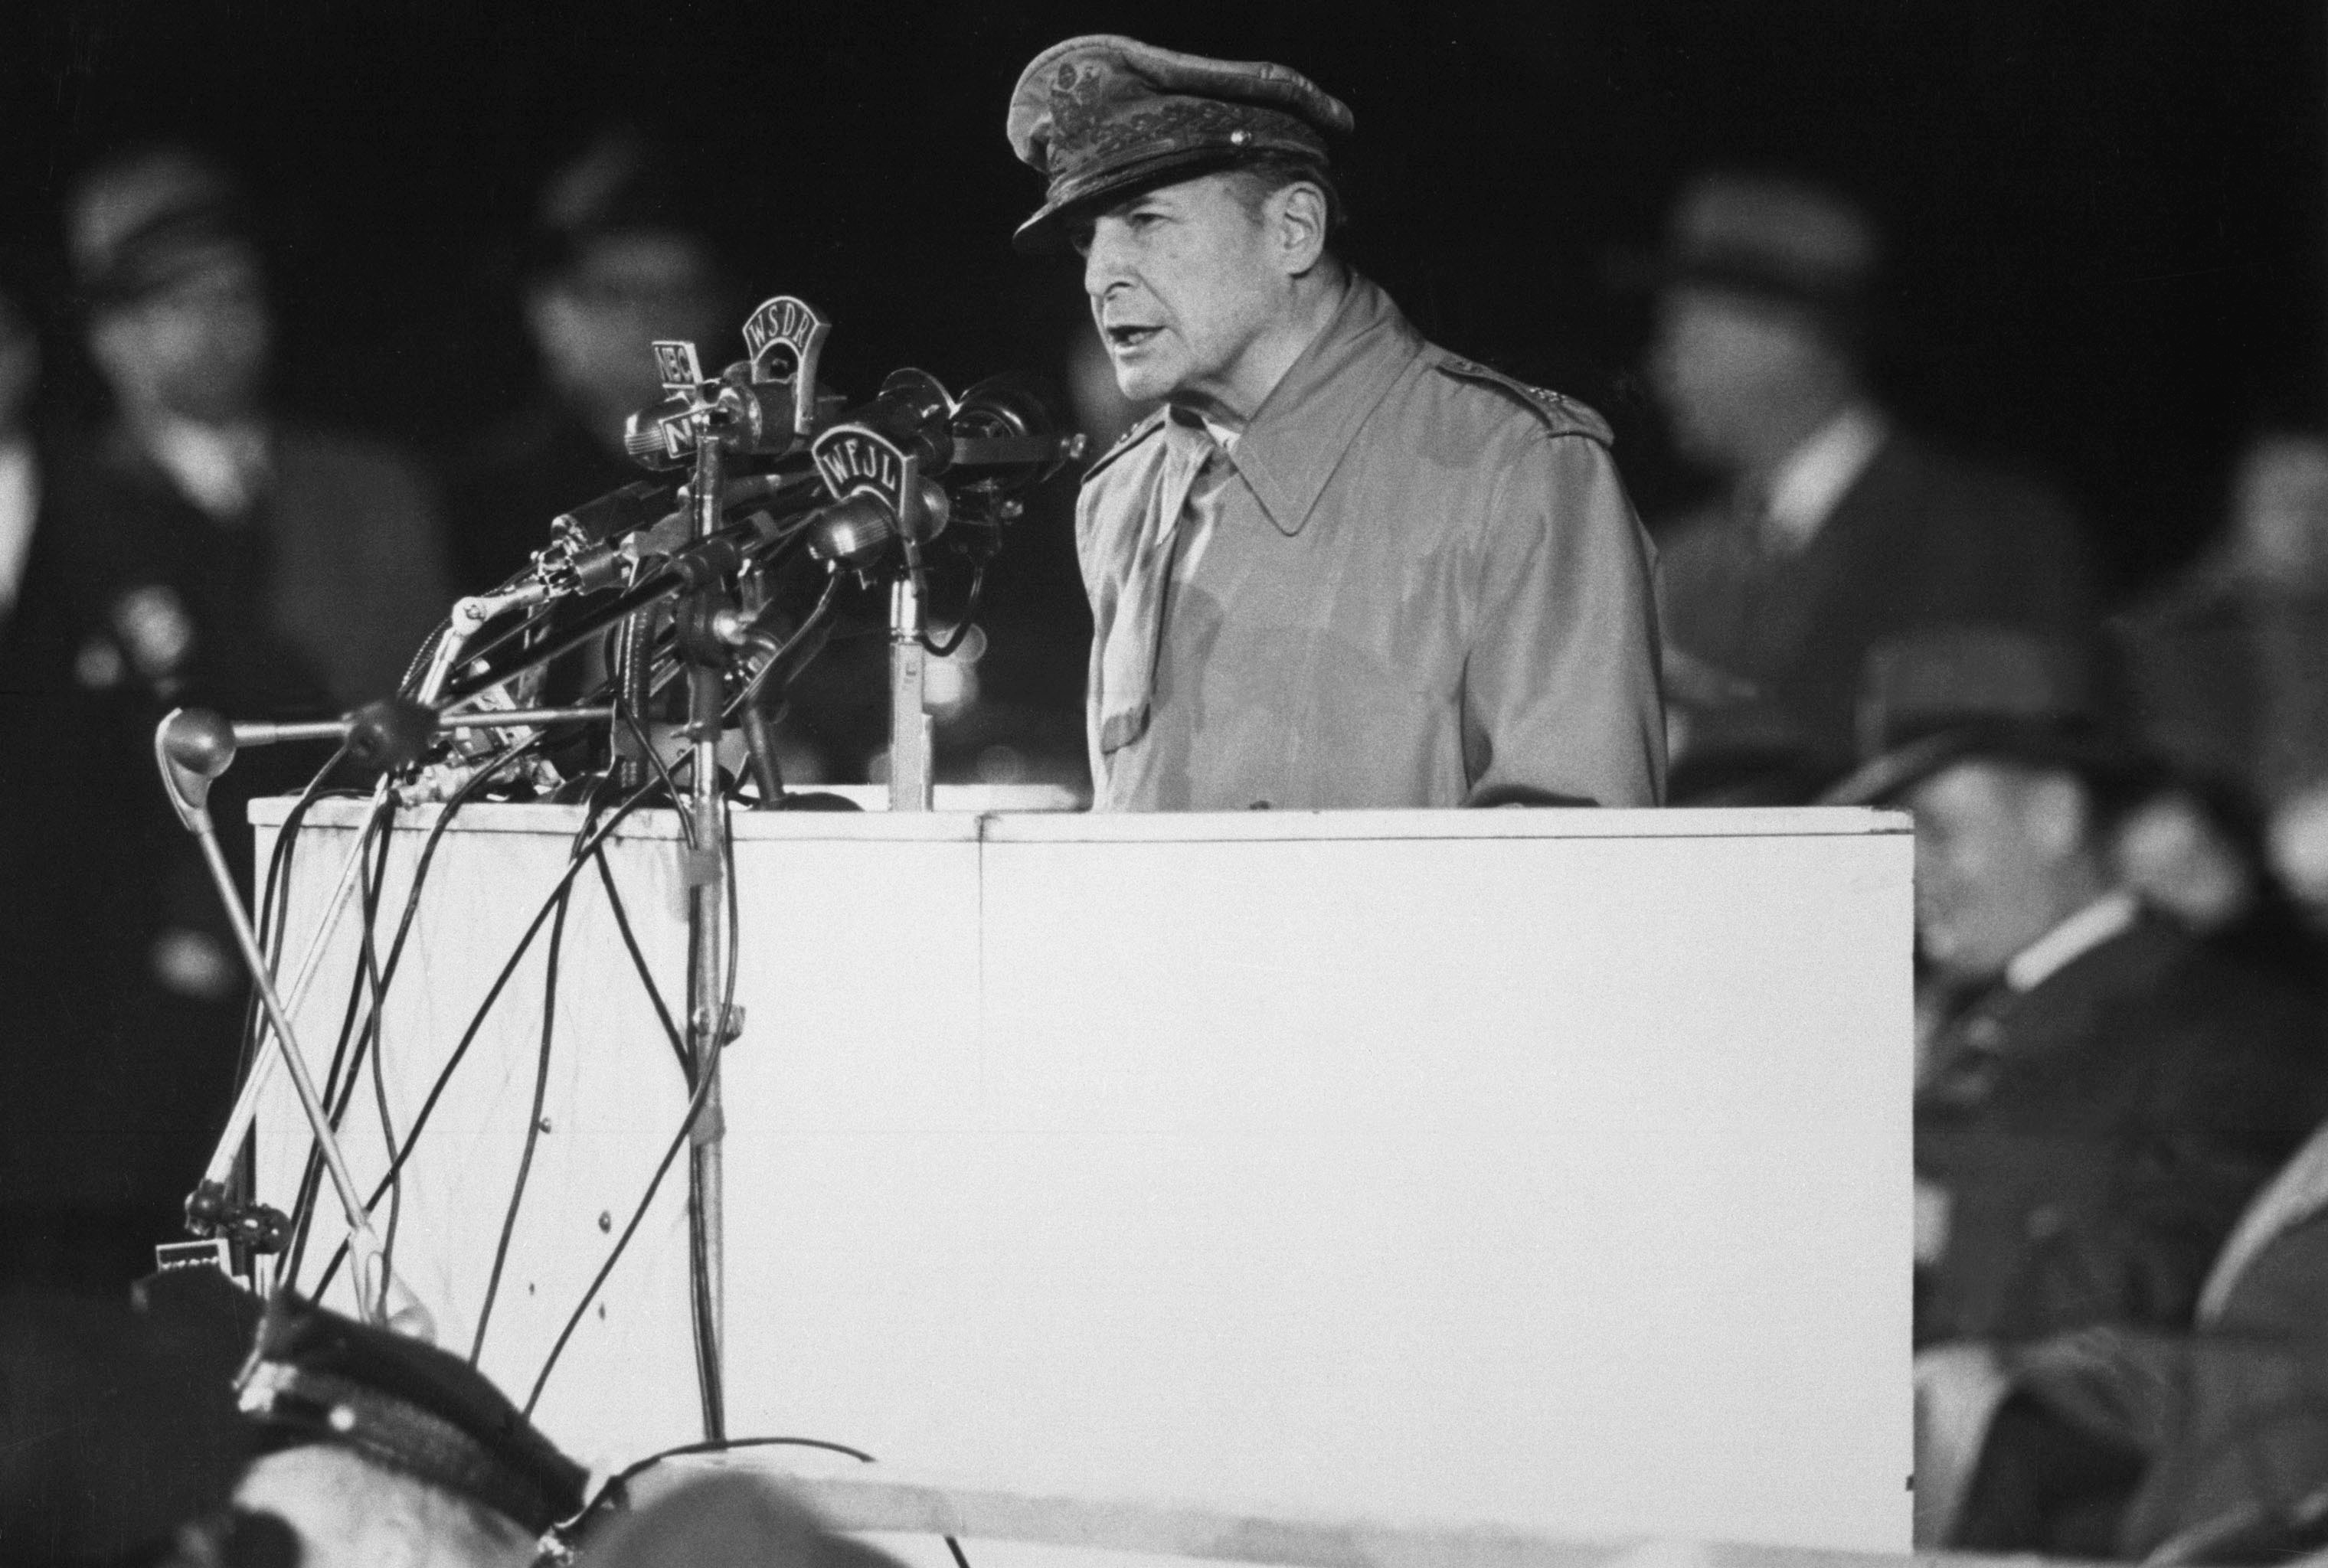 General Douglas MacArthur addressing an audience of 50,000 at Soldier's Field, Chicago, on his first visit to the United States in 14 years, April 25,1951. NARA FILE #: 306-PS-51-6988.WAR & CONFLICT BOOK #: 1377